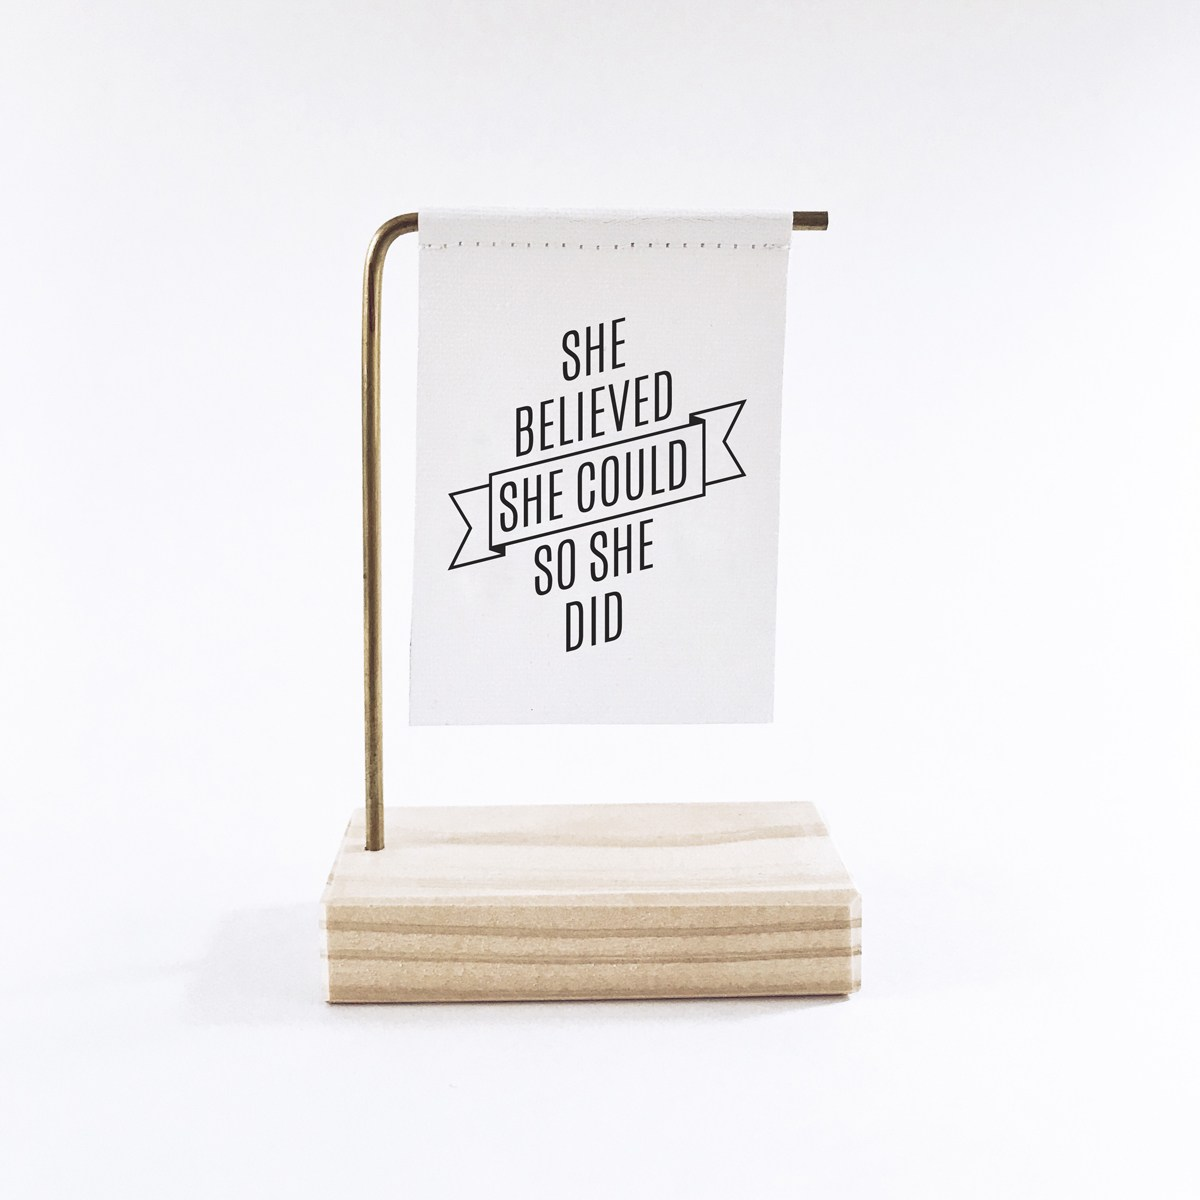 Studio-336-She-Believed-She-Could-Small-Standing-Banner72.jpg